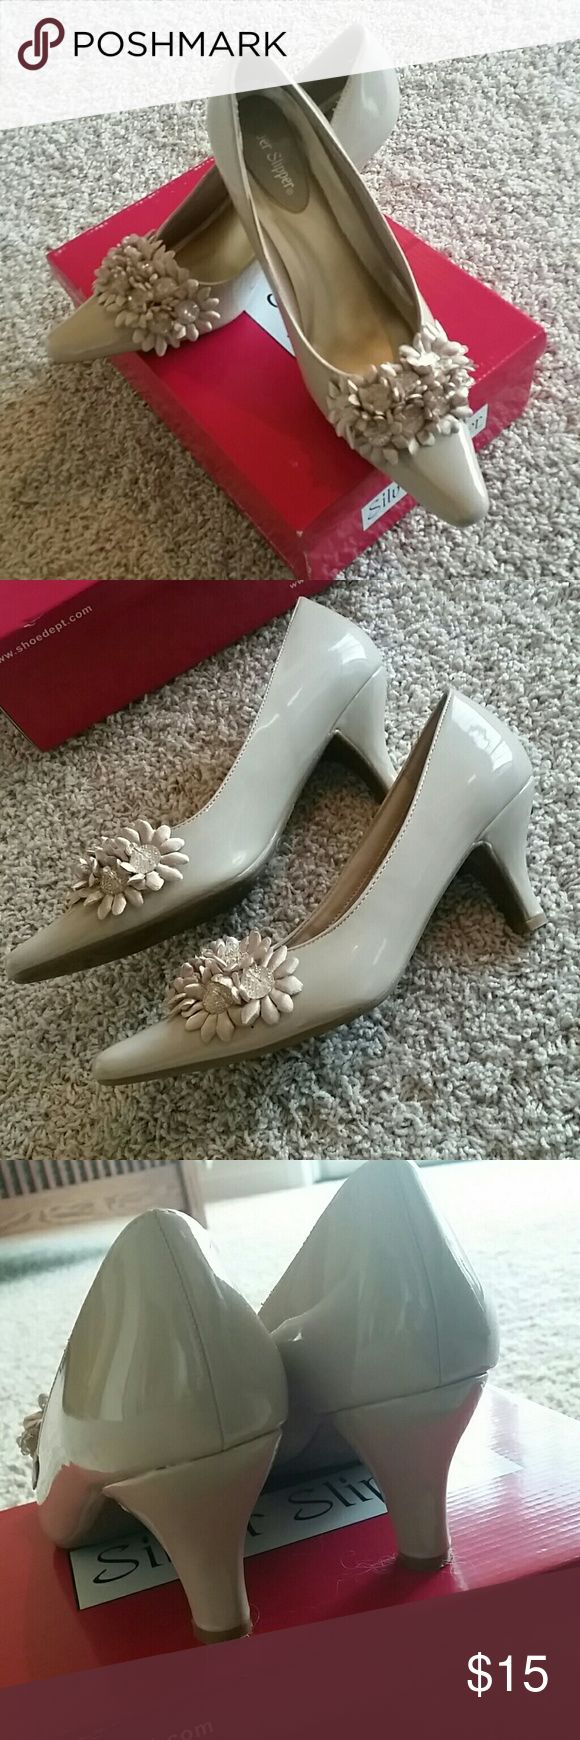 Silver Slipper size 8.5 taupe heels Excellent condition used shoes. Wore for a one time occasion. Silver Slipper  Shoes Heels